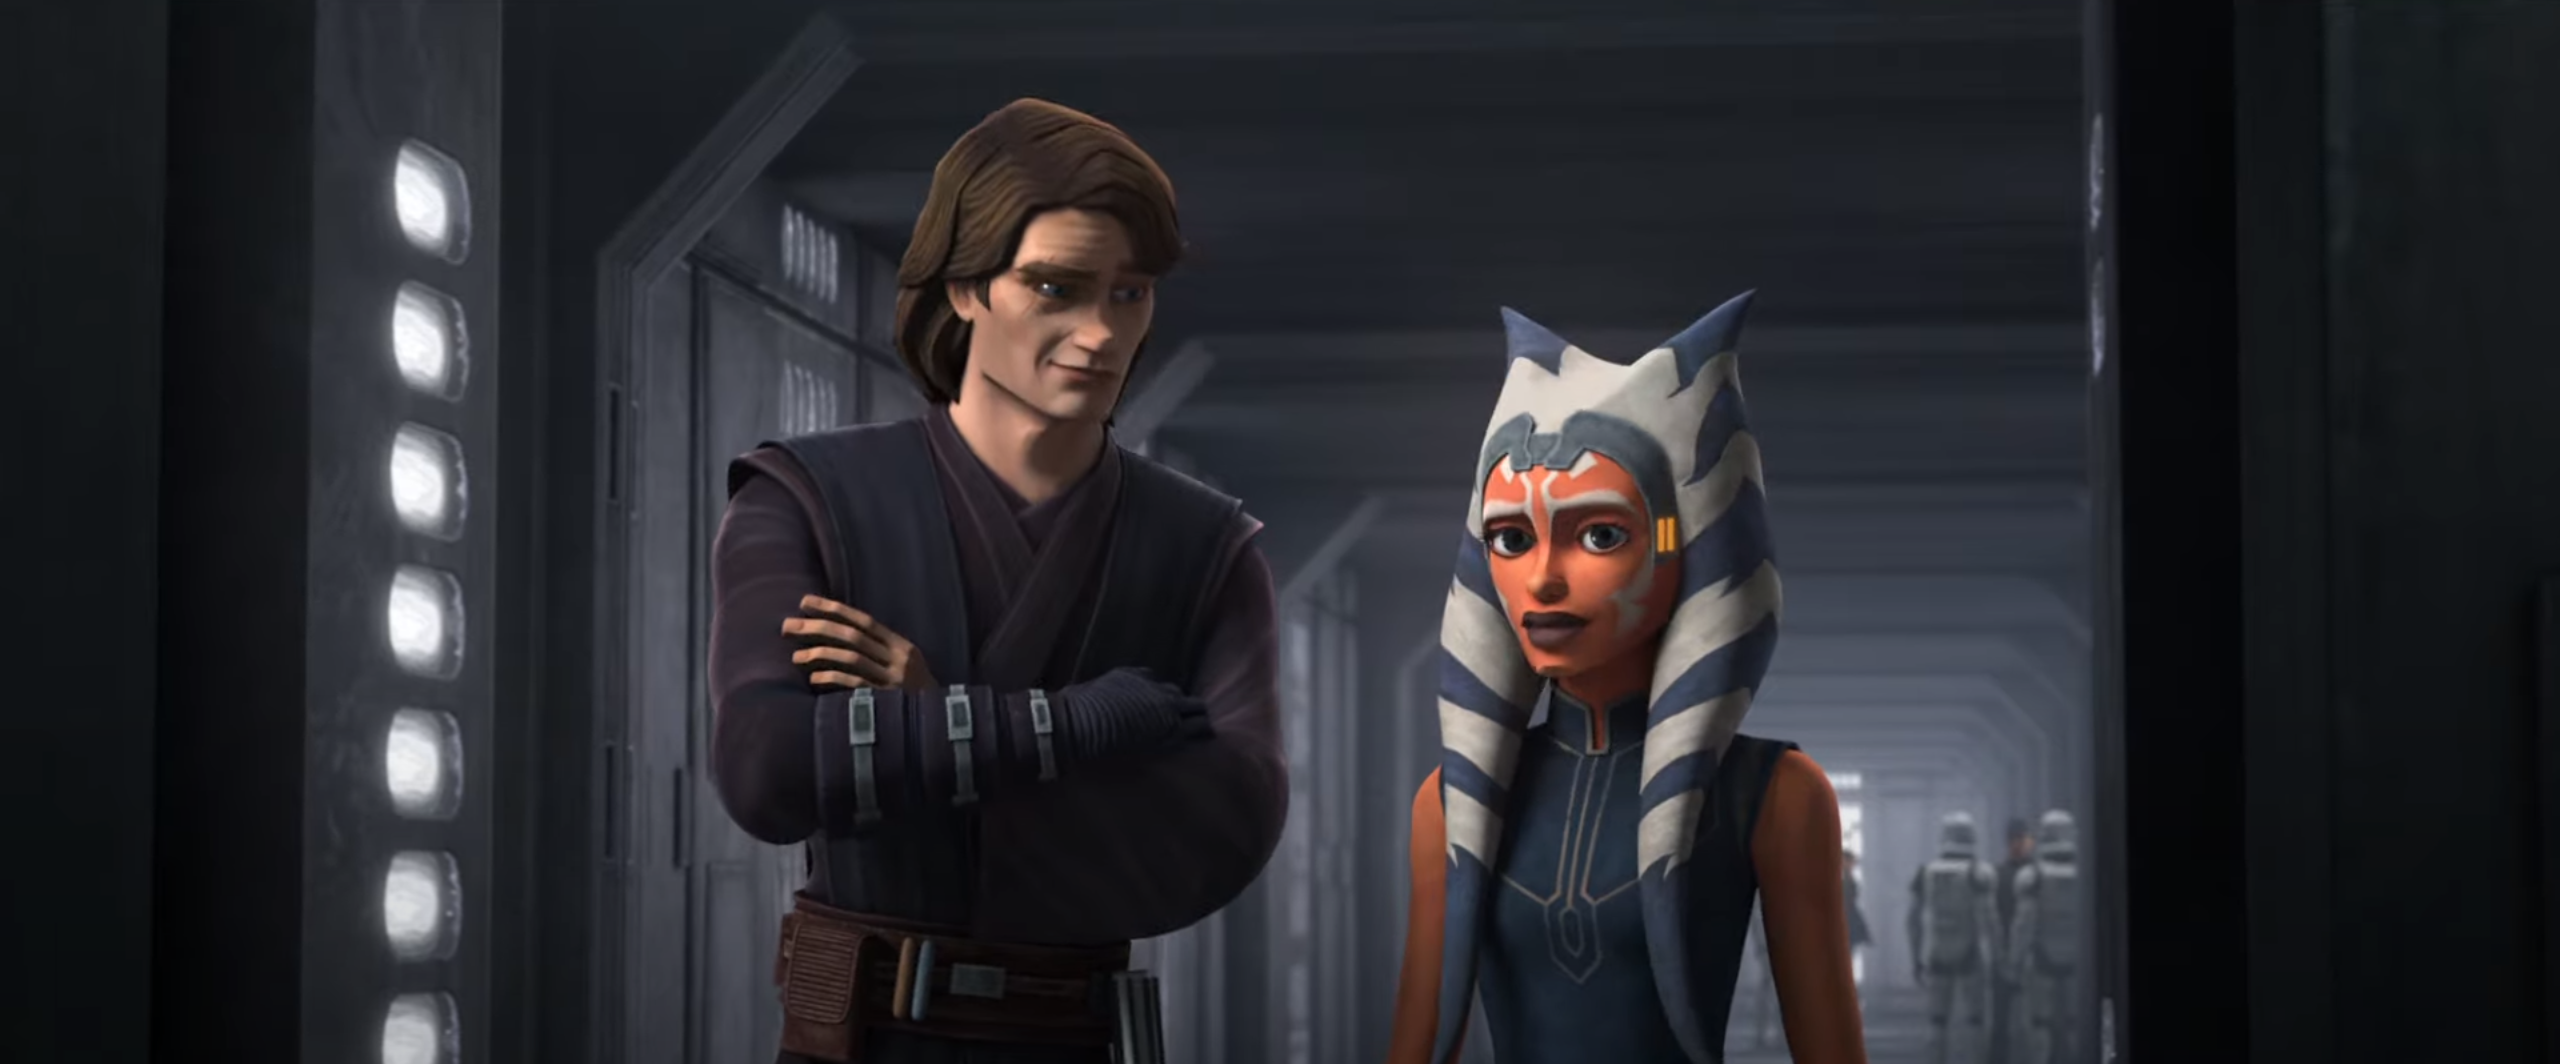 In The Emotional Final Clone Wars Trailer, The Siege Of Mandalore Arrives